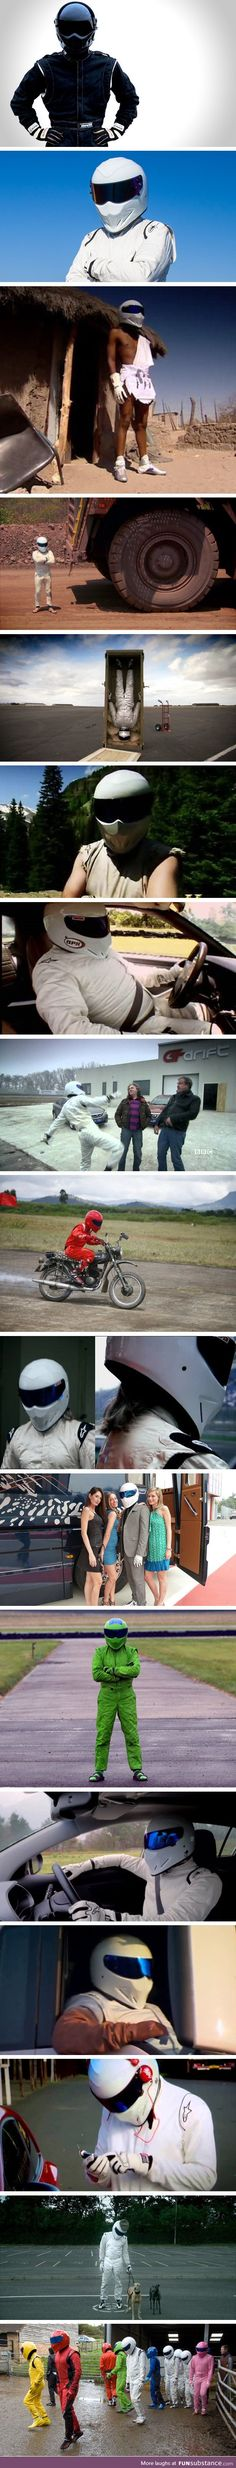 Top Gear The Stig family Top Gear Funny, Funny Car Quotes, Top Gear Bbc, American Version, British Humor, Comic, Grand Tour, Car Humor, Best Shows Ever